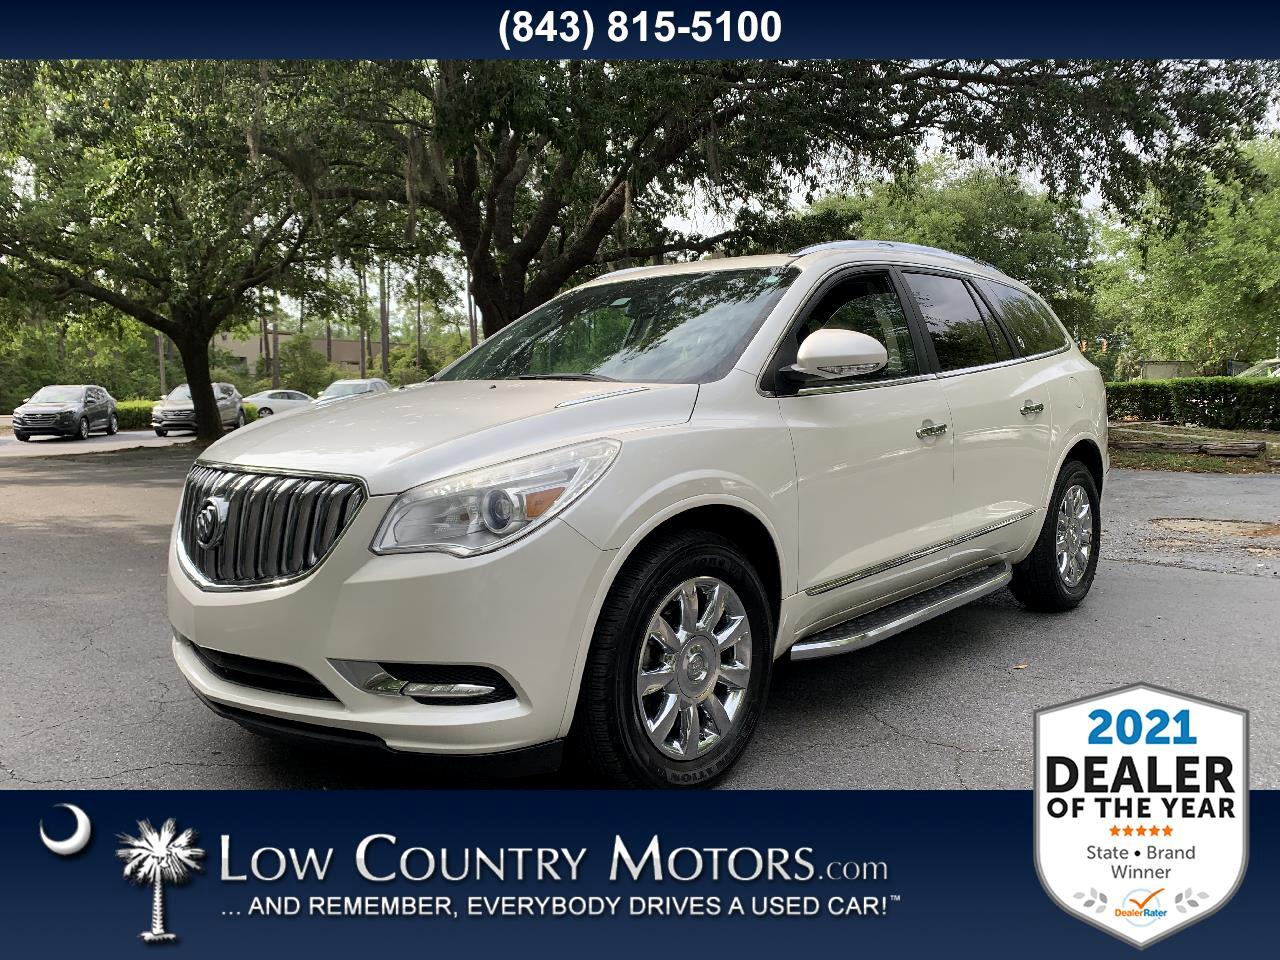 used 2014 Buick Enclave car, priced at $16,997